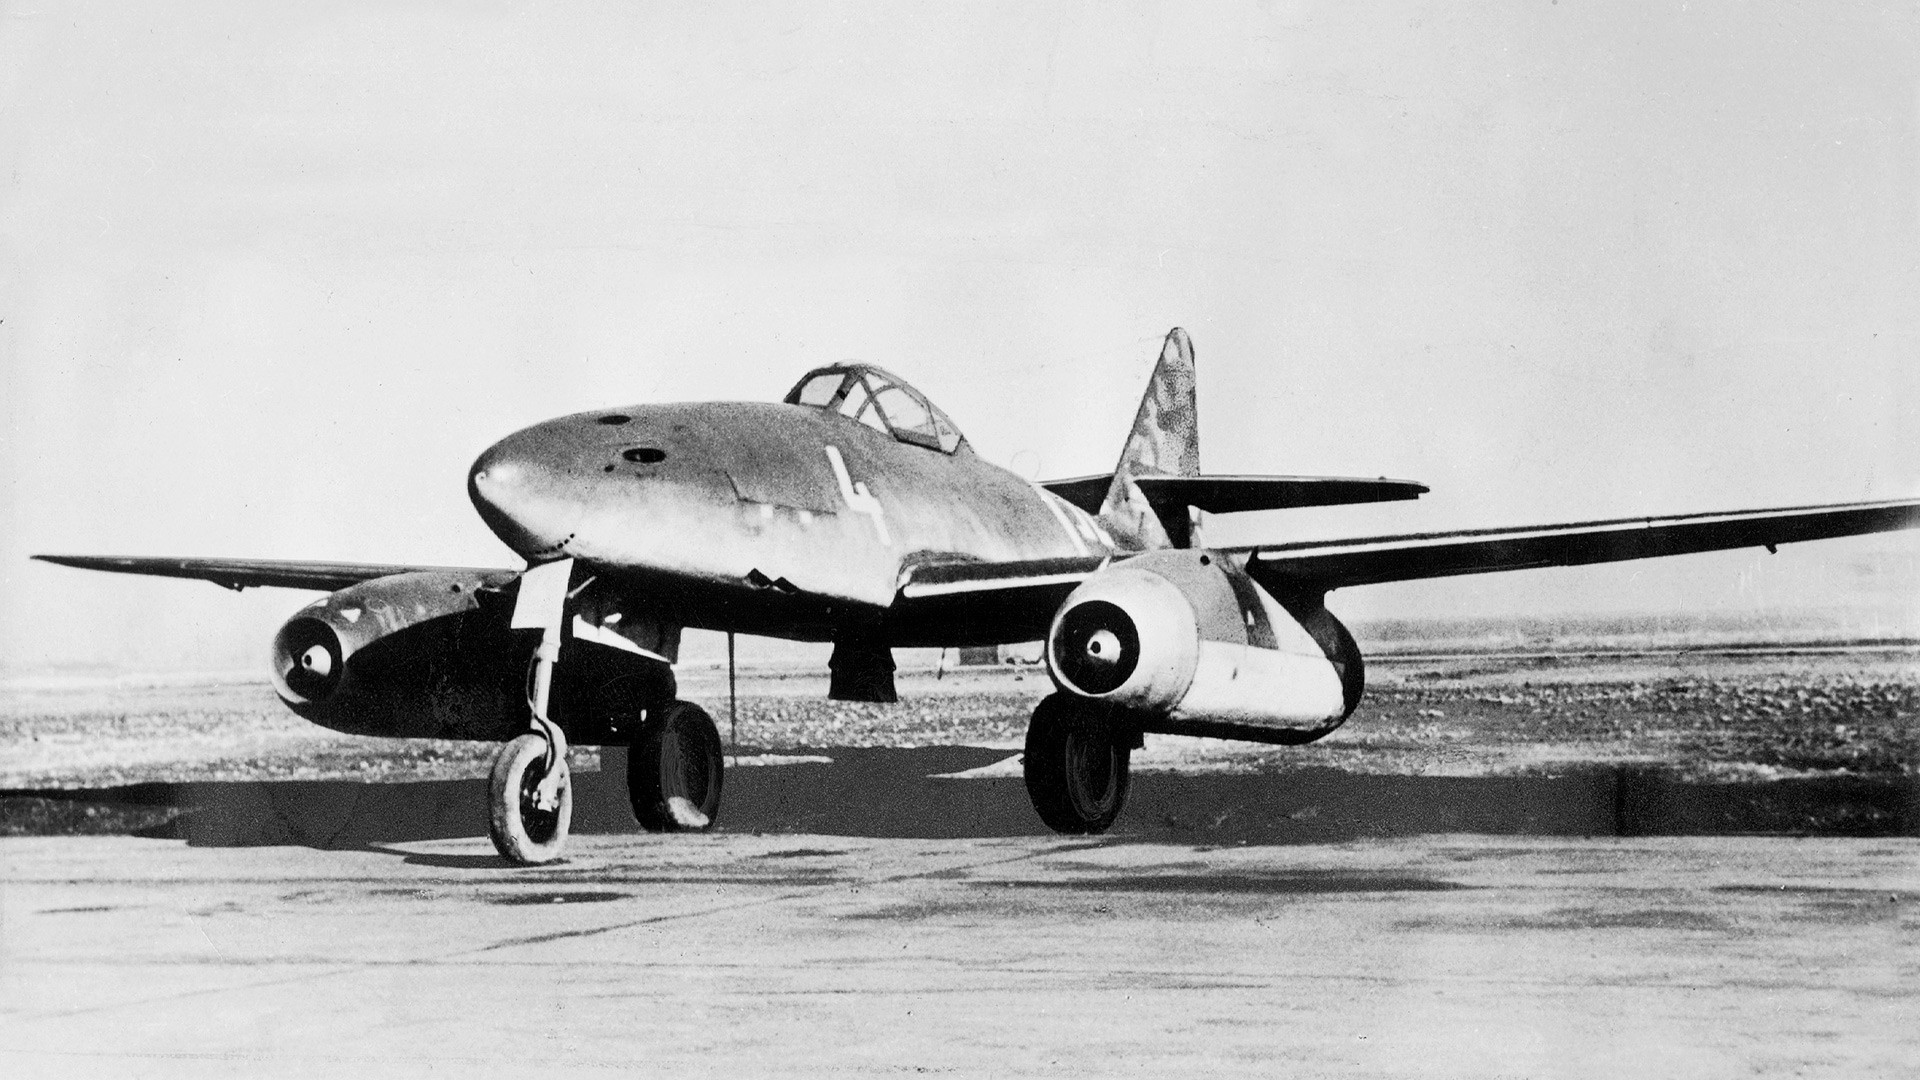 A German jet fighter Messerschmitt Me 262.